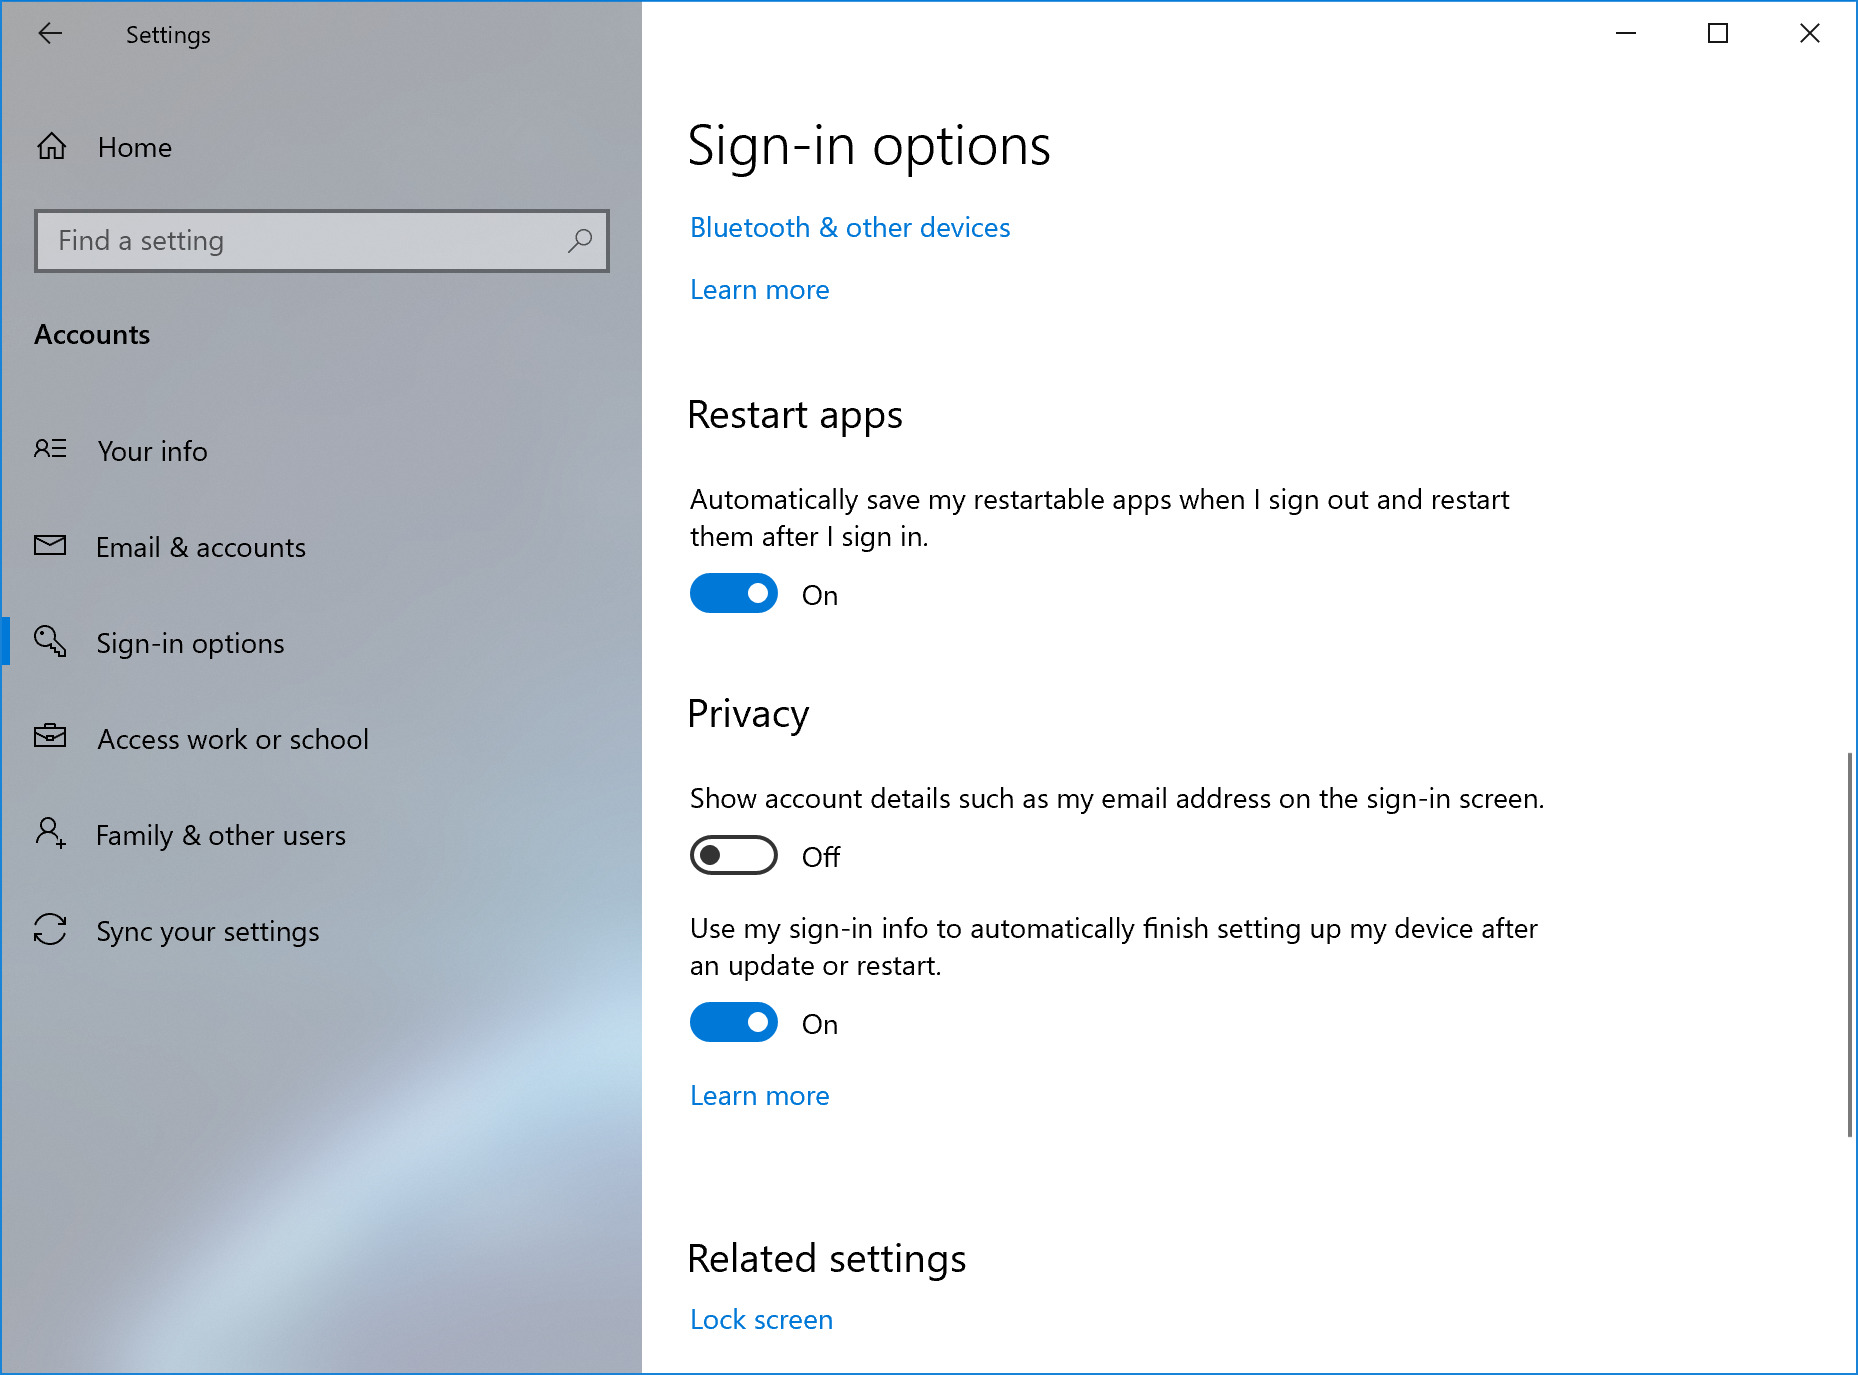 Windows 10 Preview can automatically restart some apps at